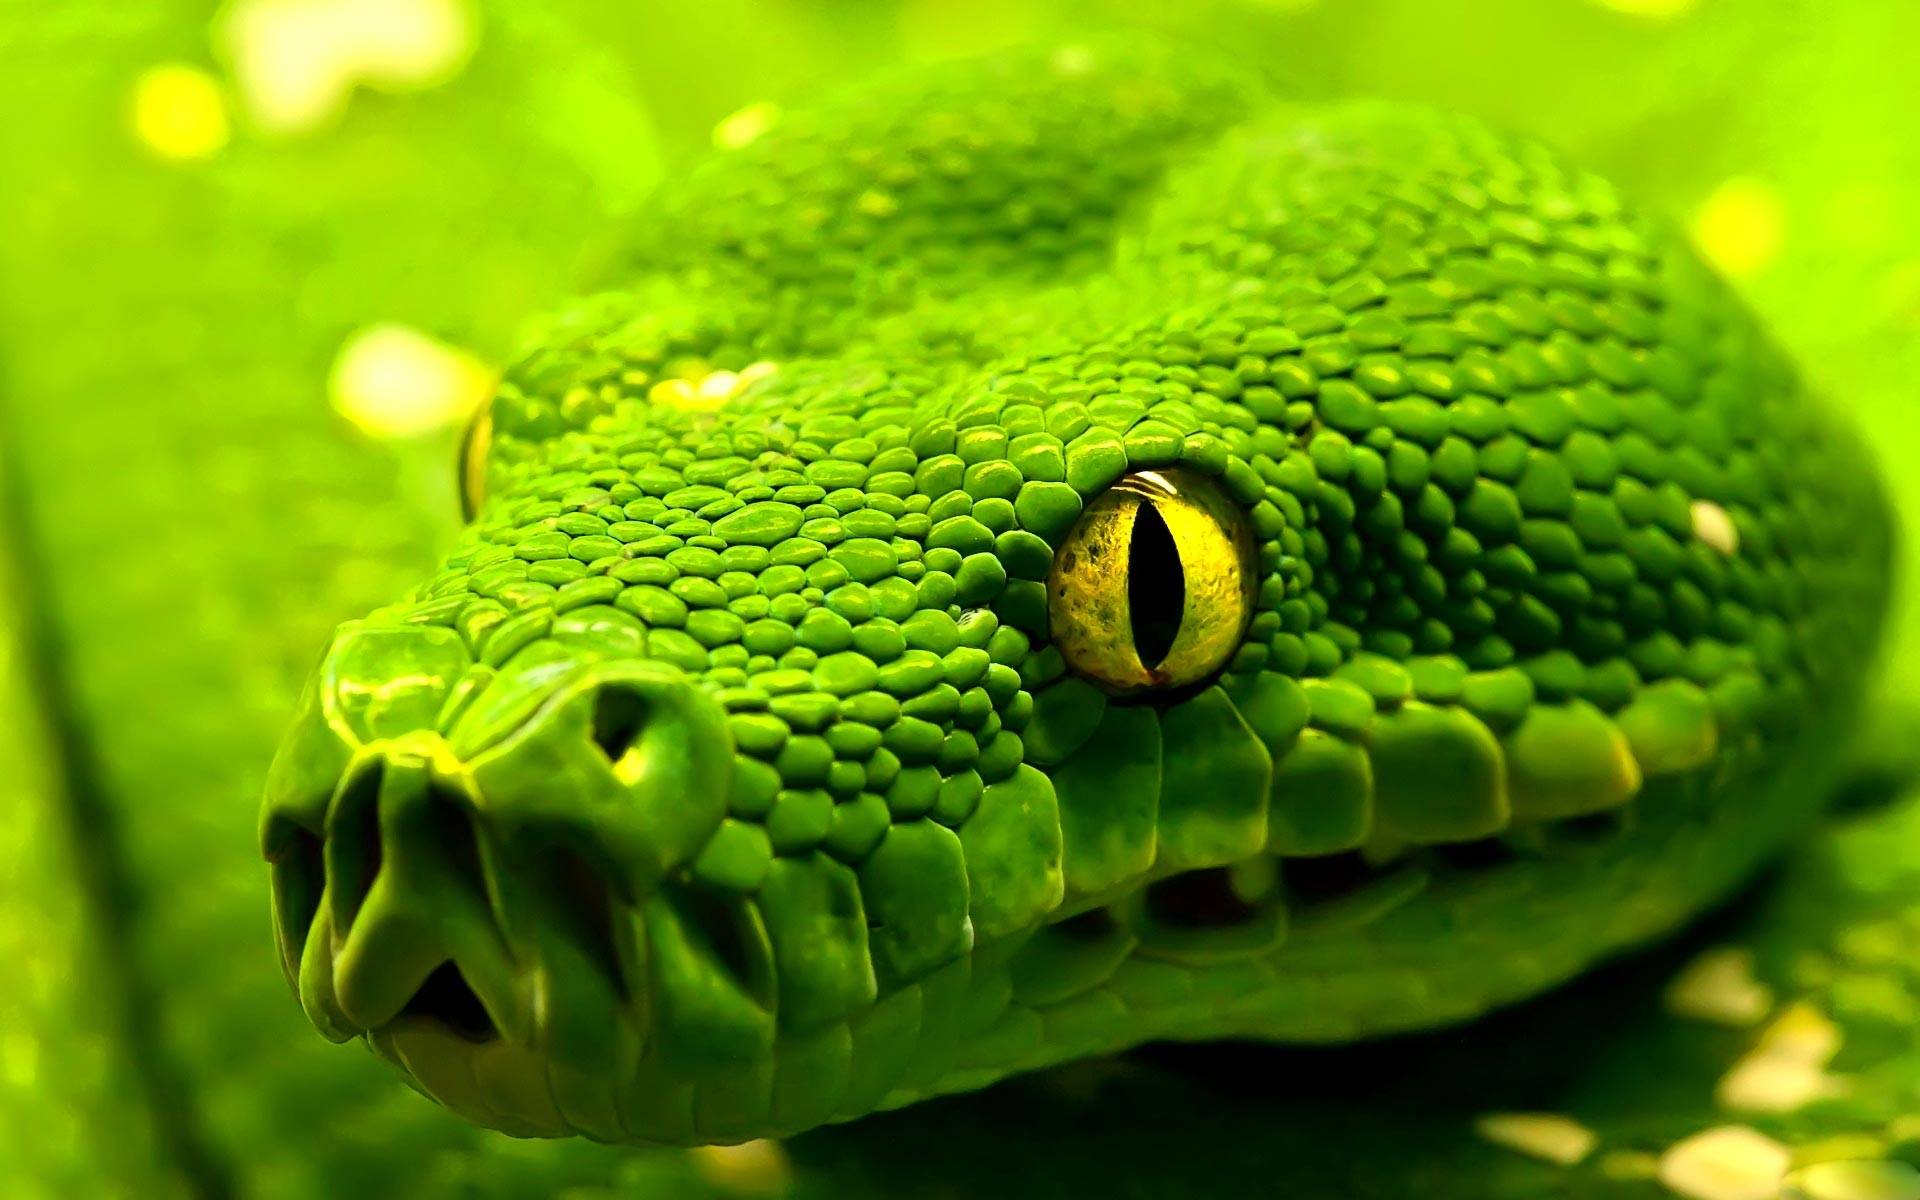 beautiful-green-snake-hd-wallpapers-cool-desktop-background-images-widescreen